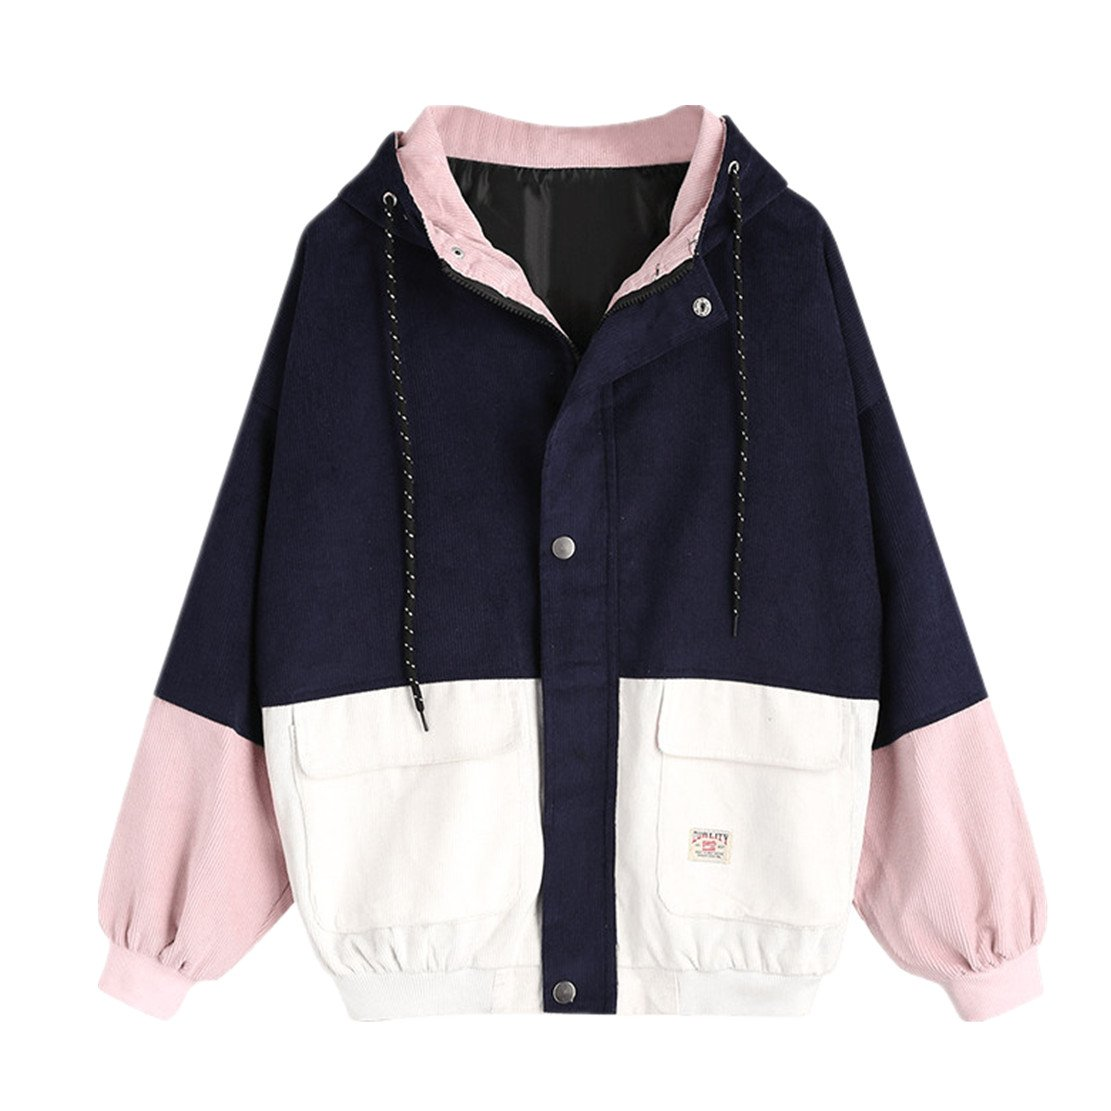 WEUIE Women Outwear Clearance Sale! Women Long Sleeve Corduroy Patchwork Oversize Jacket Windbreaker Coat Overcoat (S,Navy)